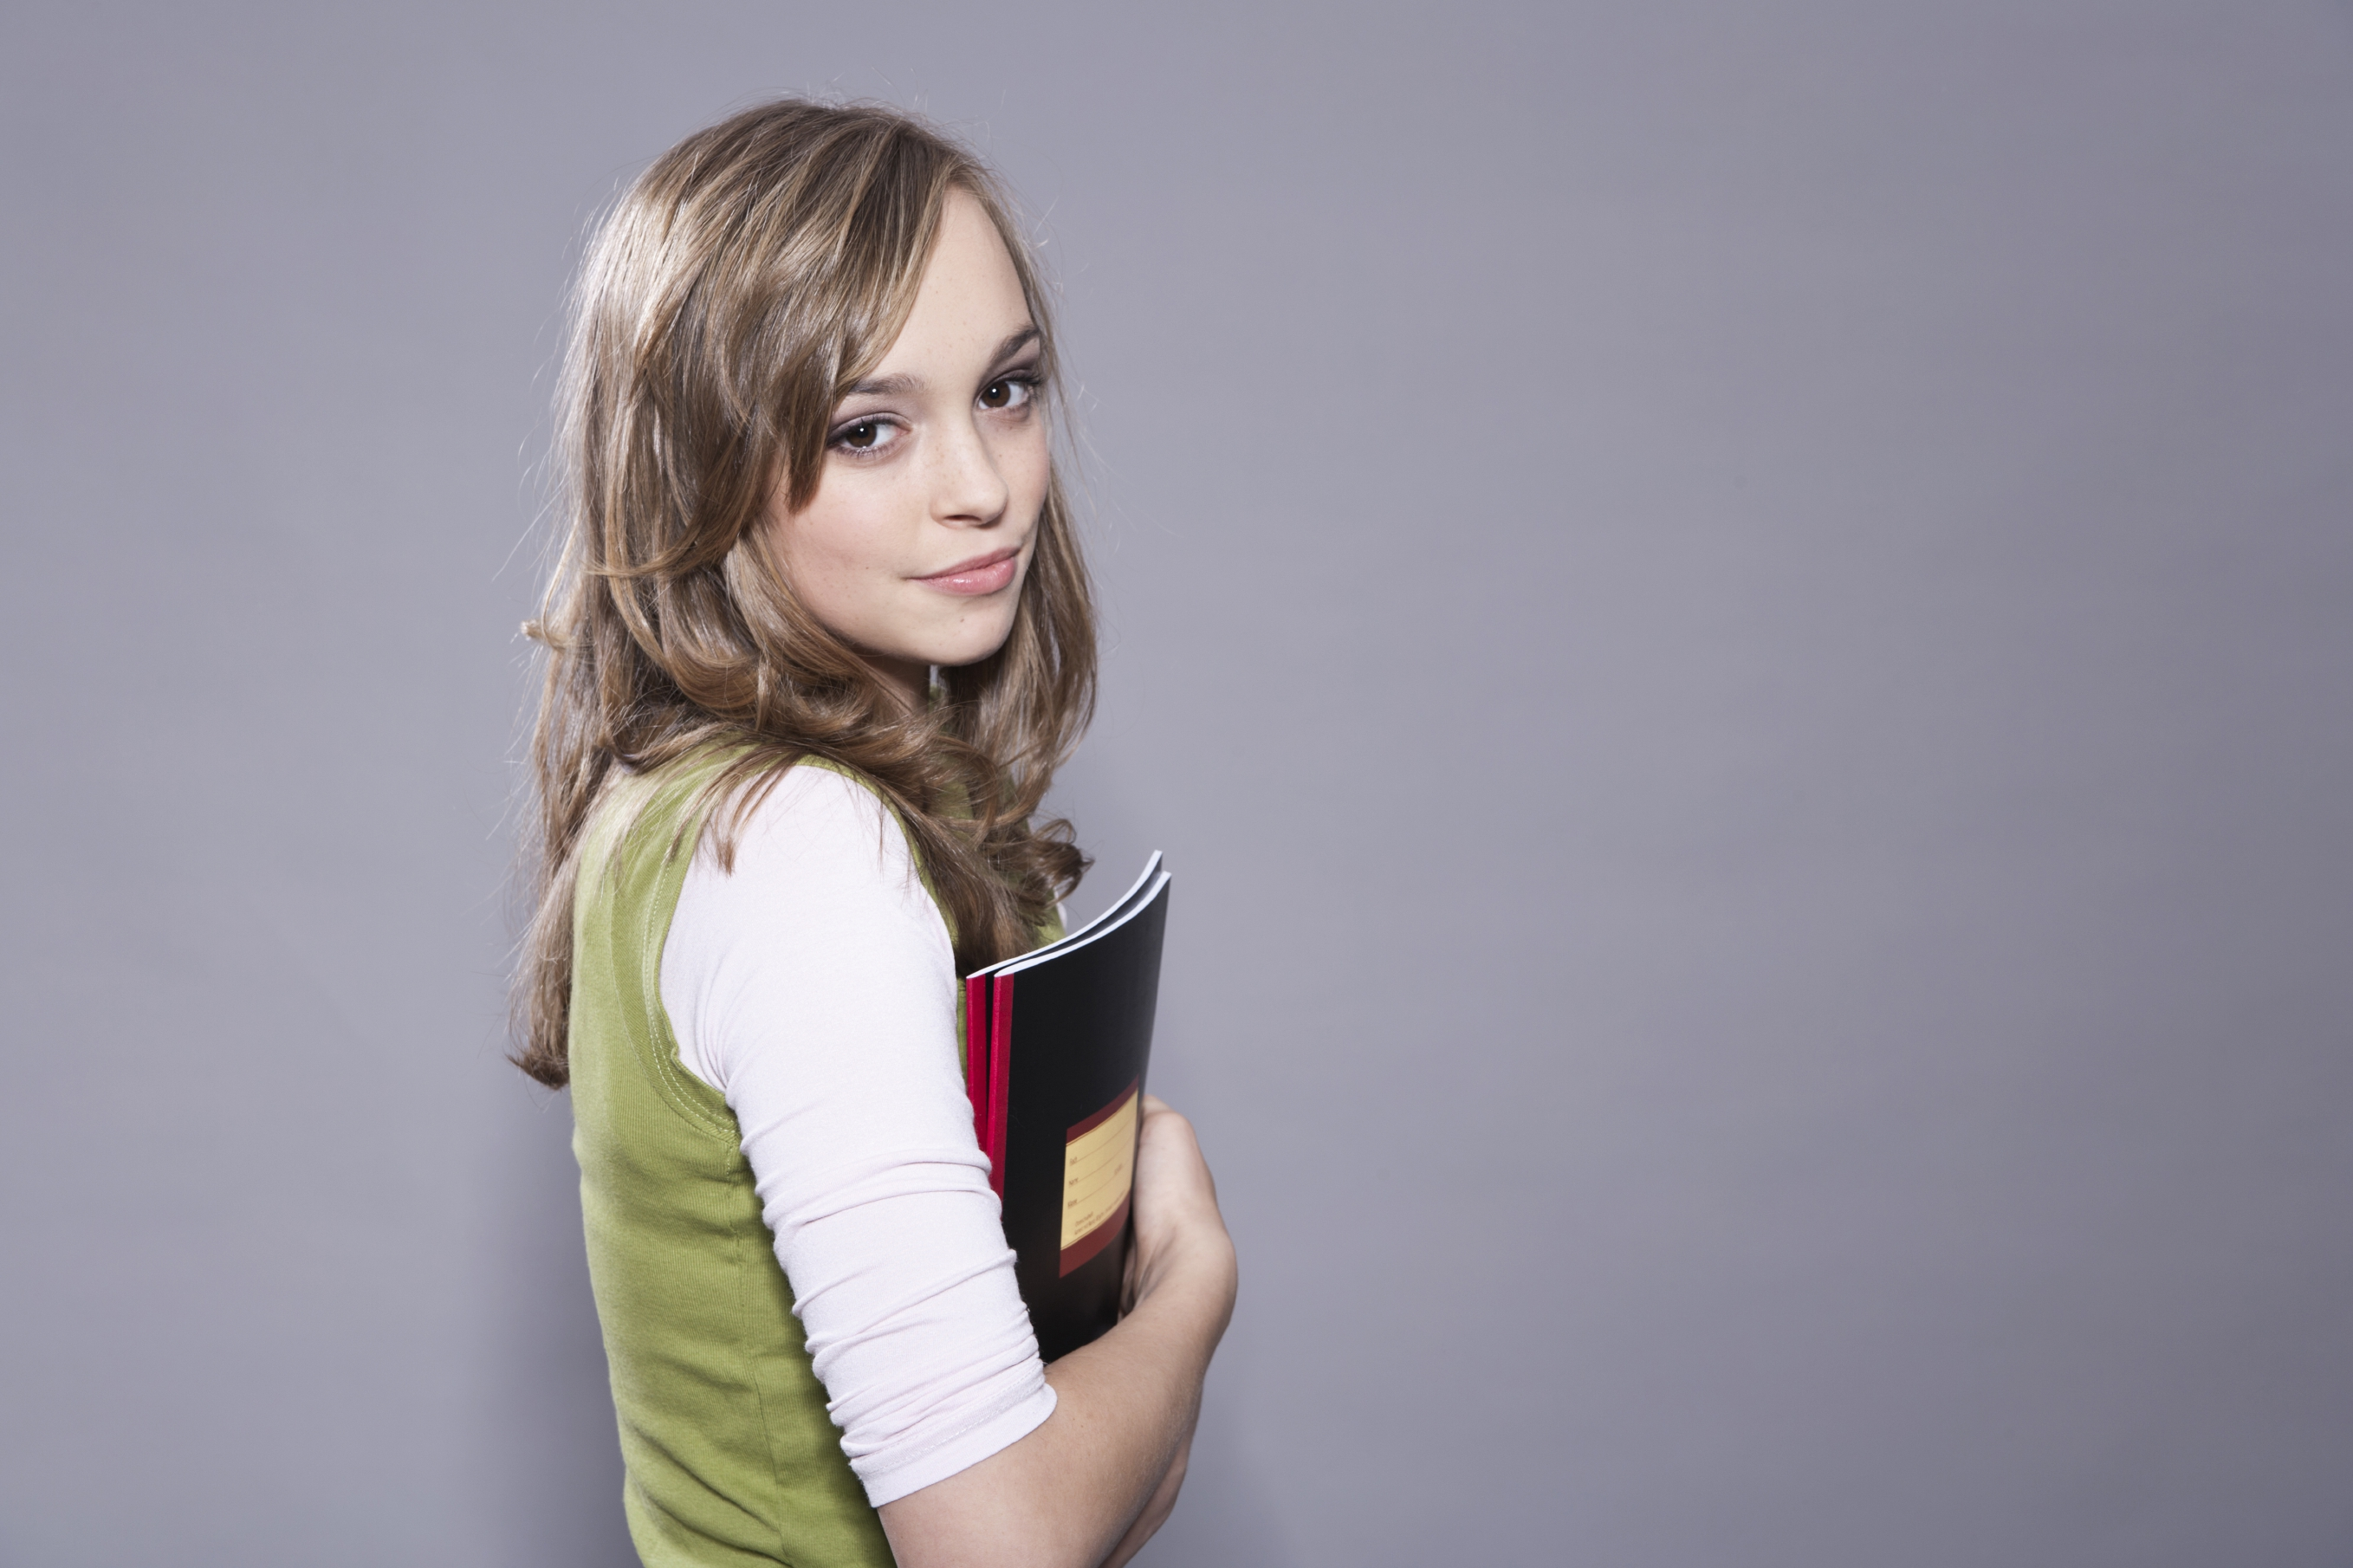 Teenage Girl Holding Books -iStock_000055507686_Large